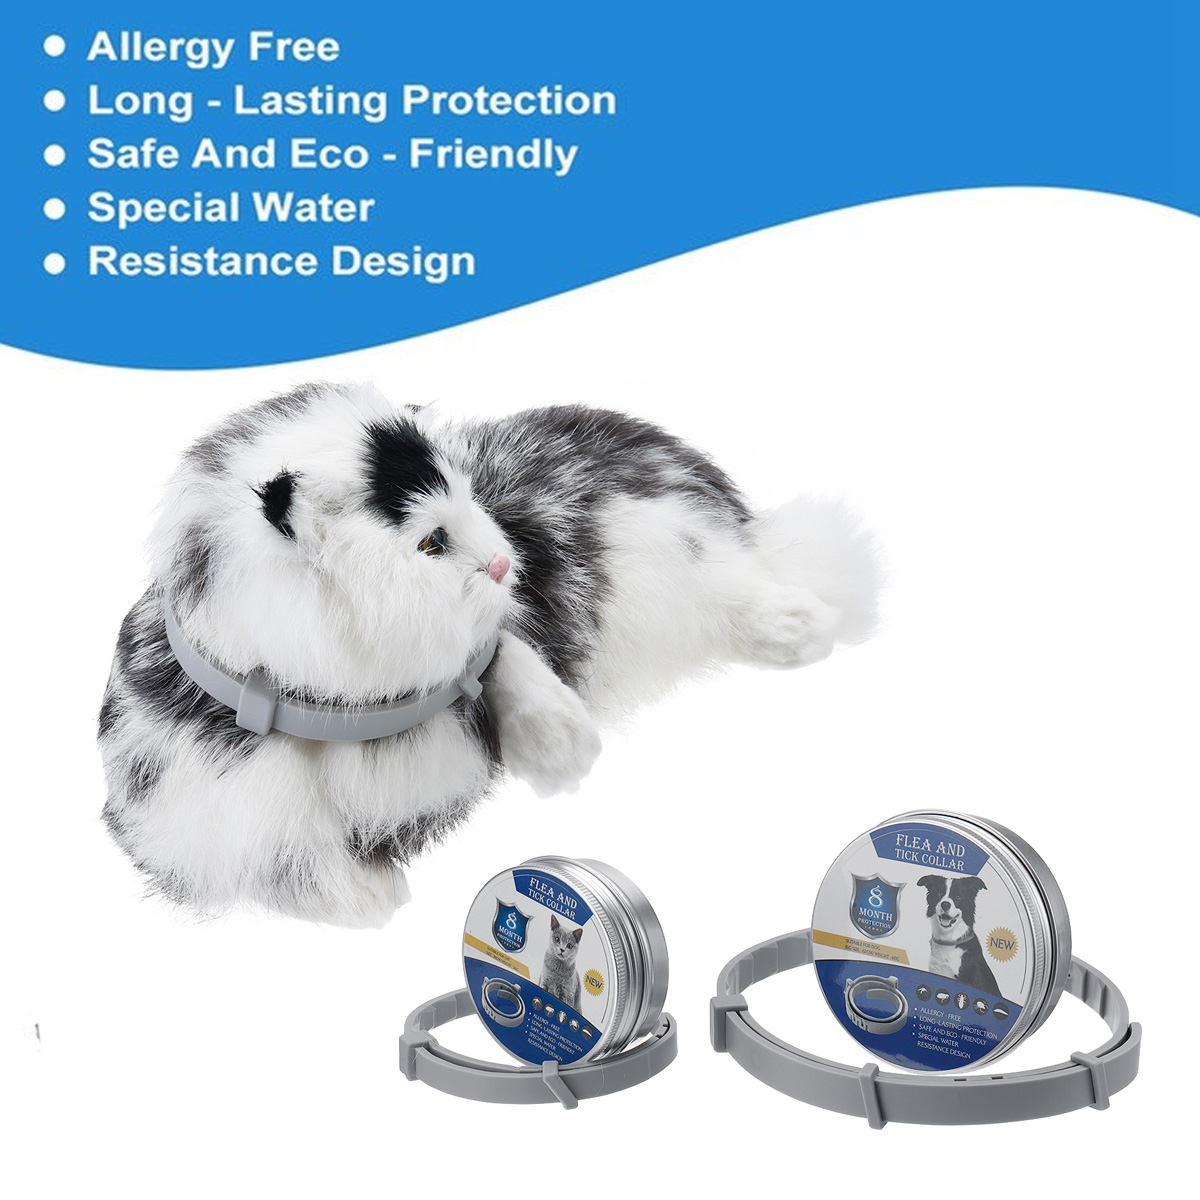 2 Size Adjustable Pet Flea Collar Flea and Tick Protection To 6 Months For Dogs And Cats